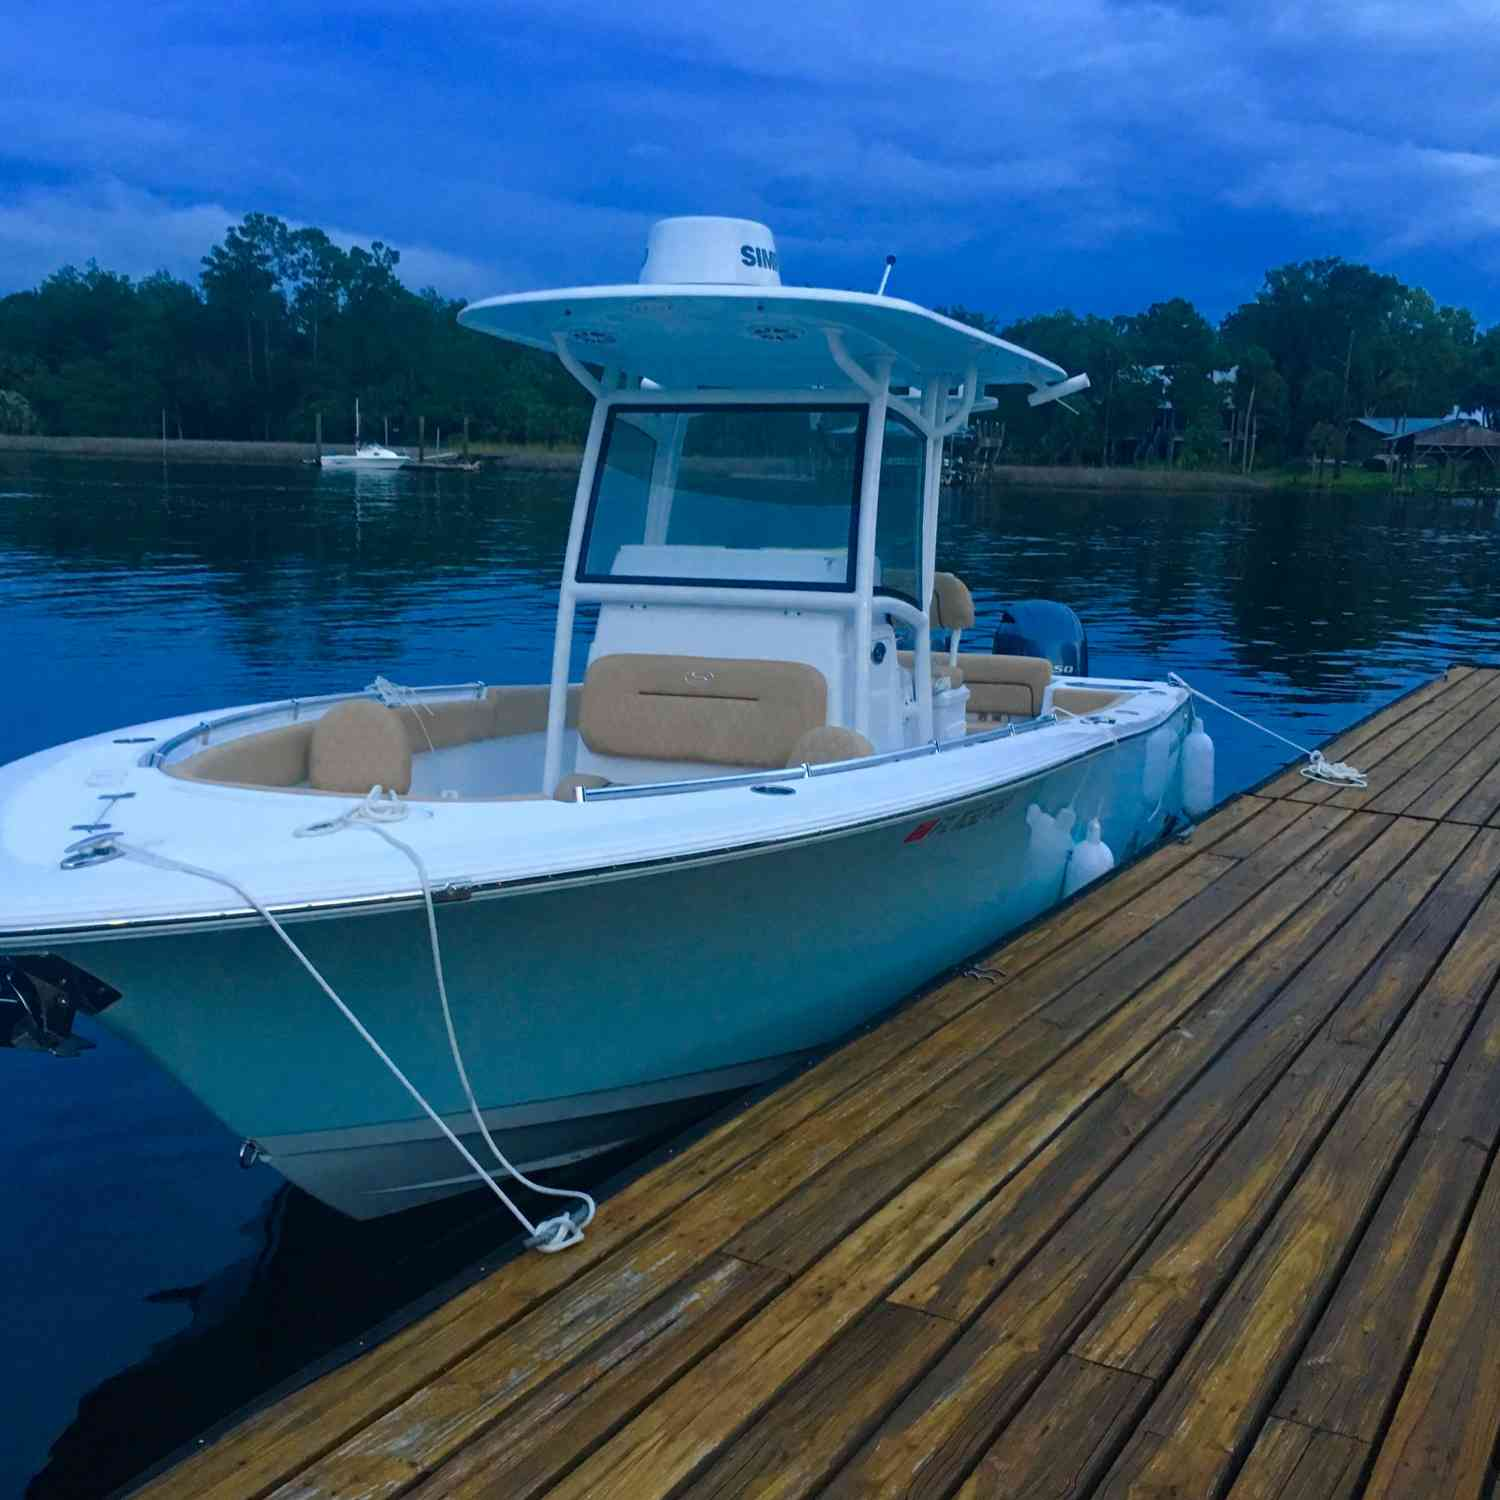 Title: Pura Vida - On board their Sportsman Heritage 251 Center Console - Location: Steinhatchee, Florida. Participating in the Photo Contest #SportsmanSeptember2018